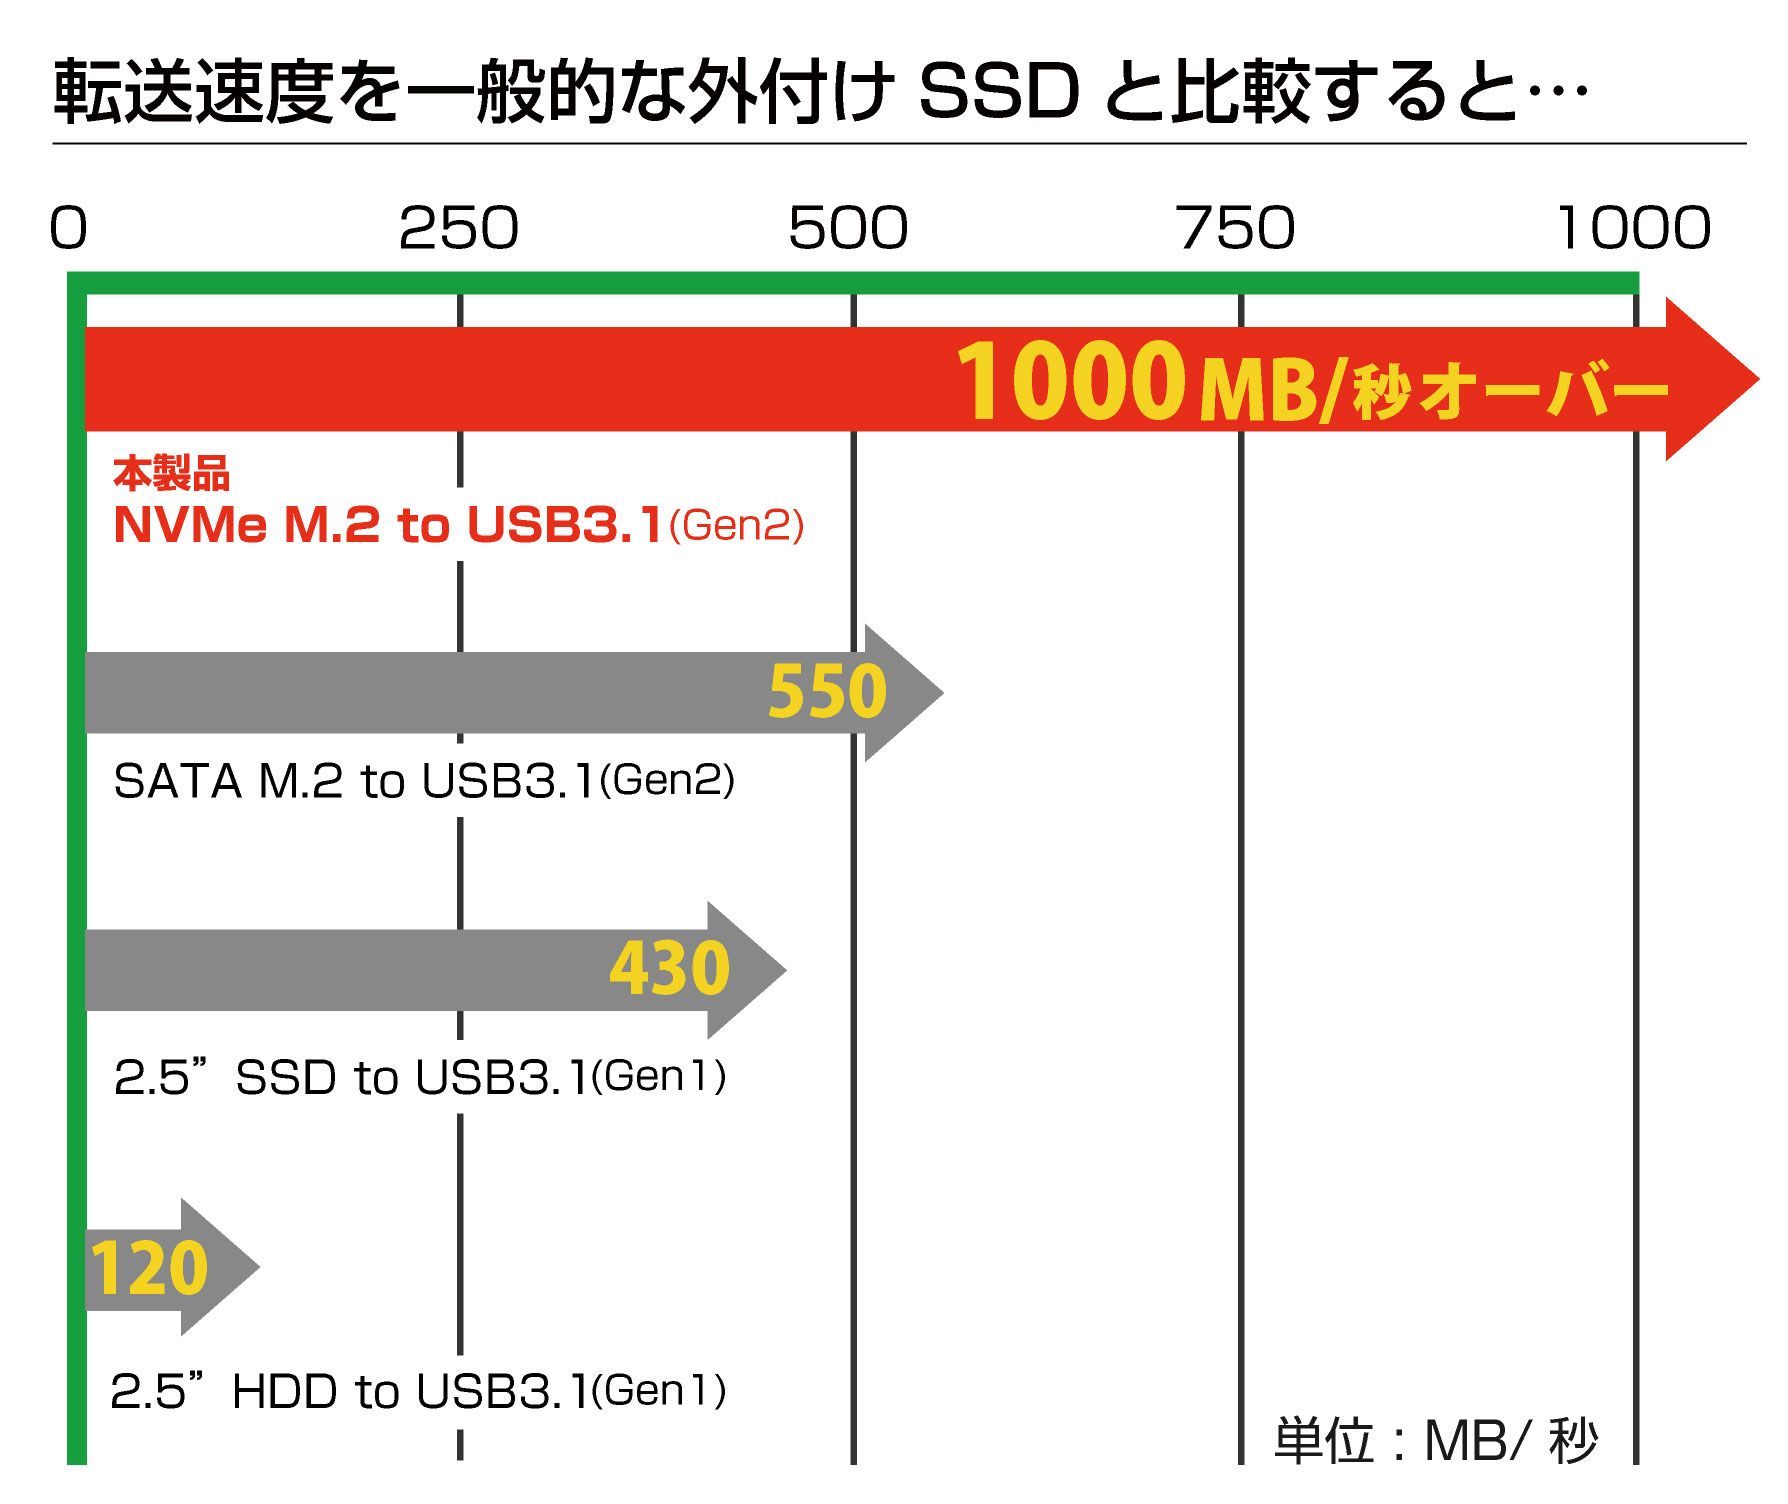 ITPROTECH NVMe 超高速外付けSSD 1TB / 1000GB M2NVME1000-JUST / M2NVME500-JUST アイティプロテック